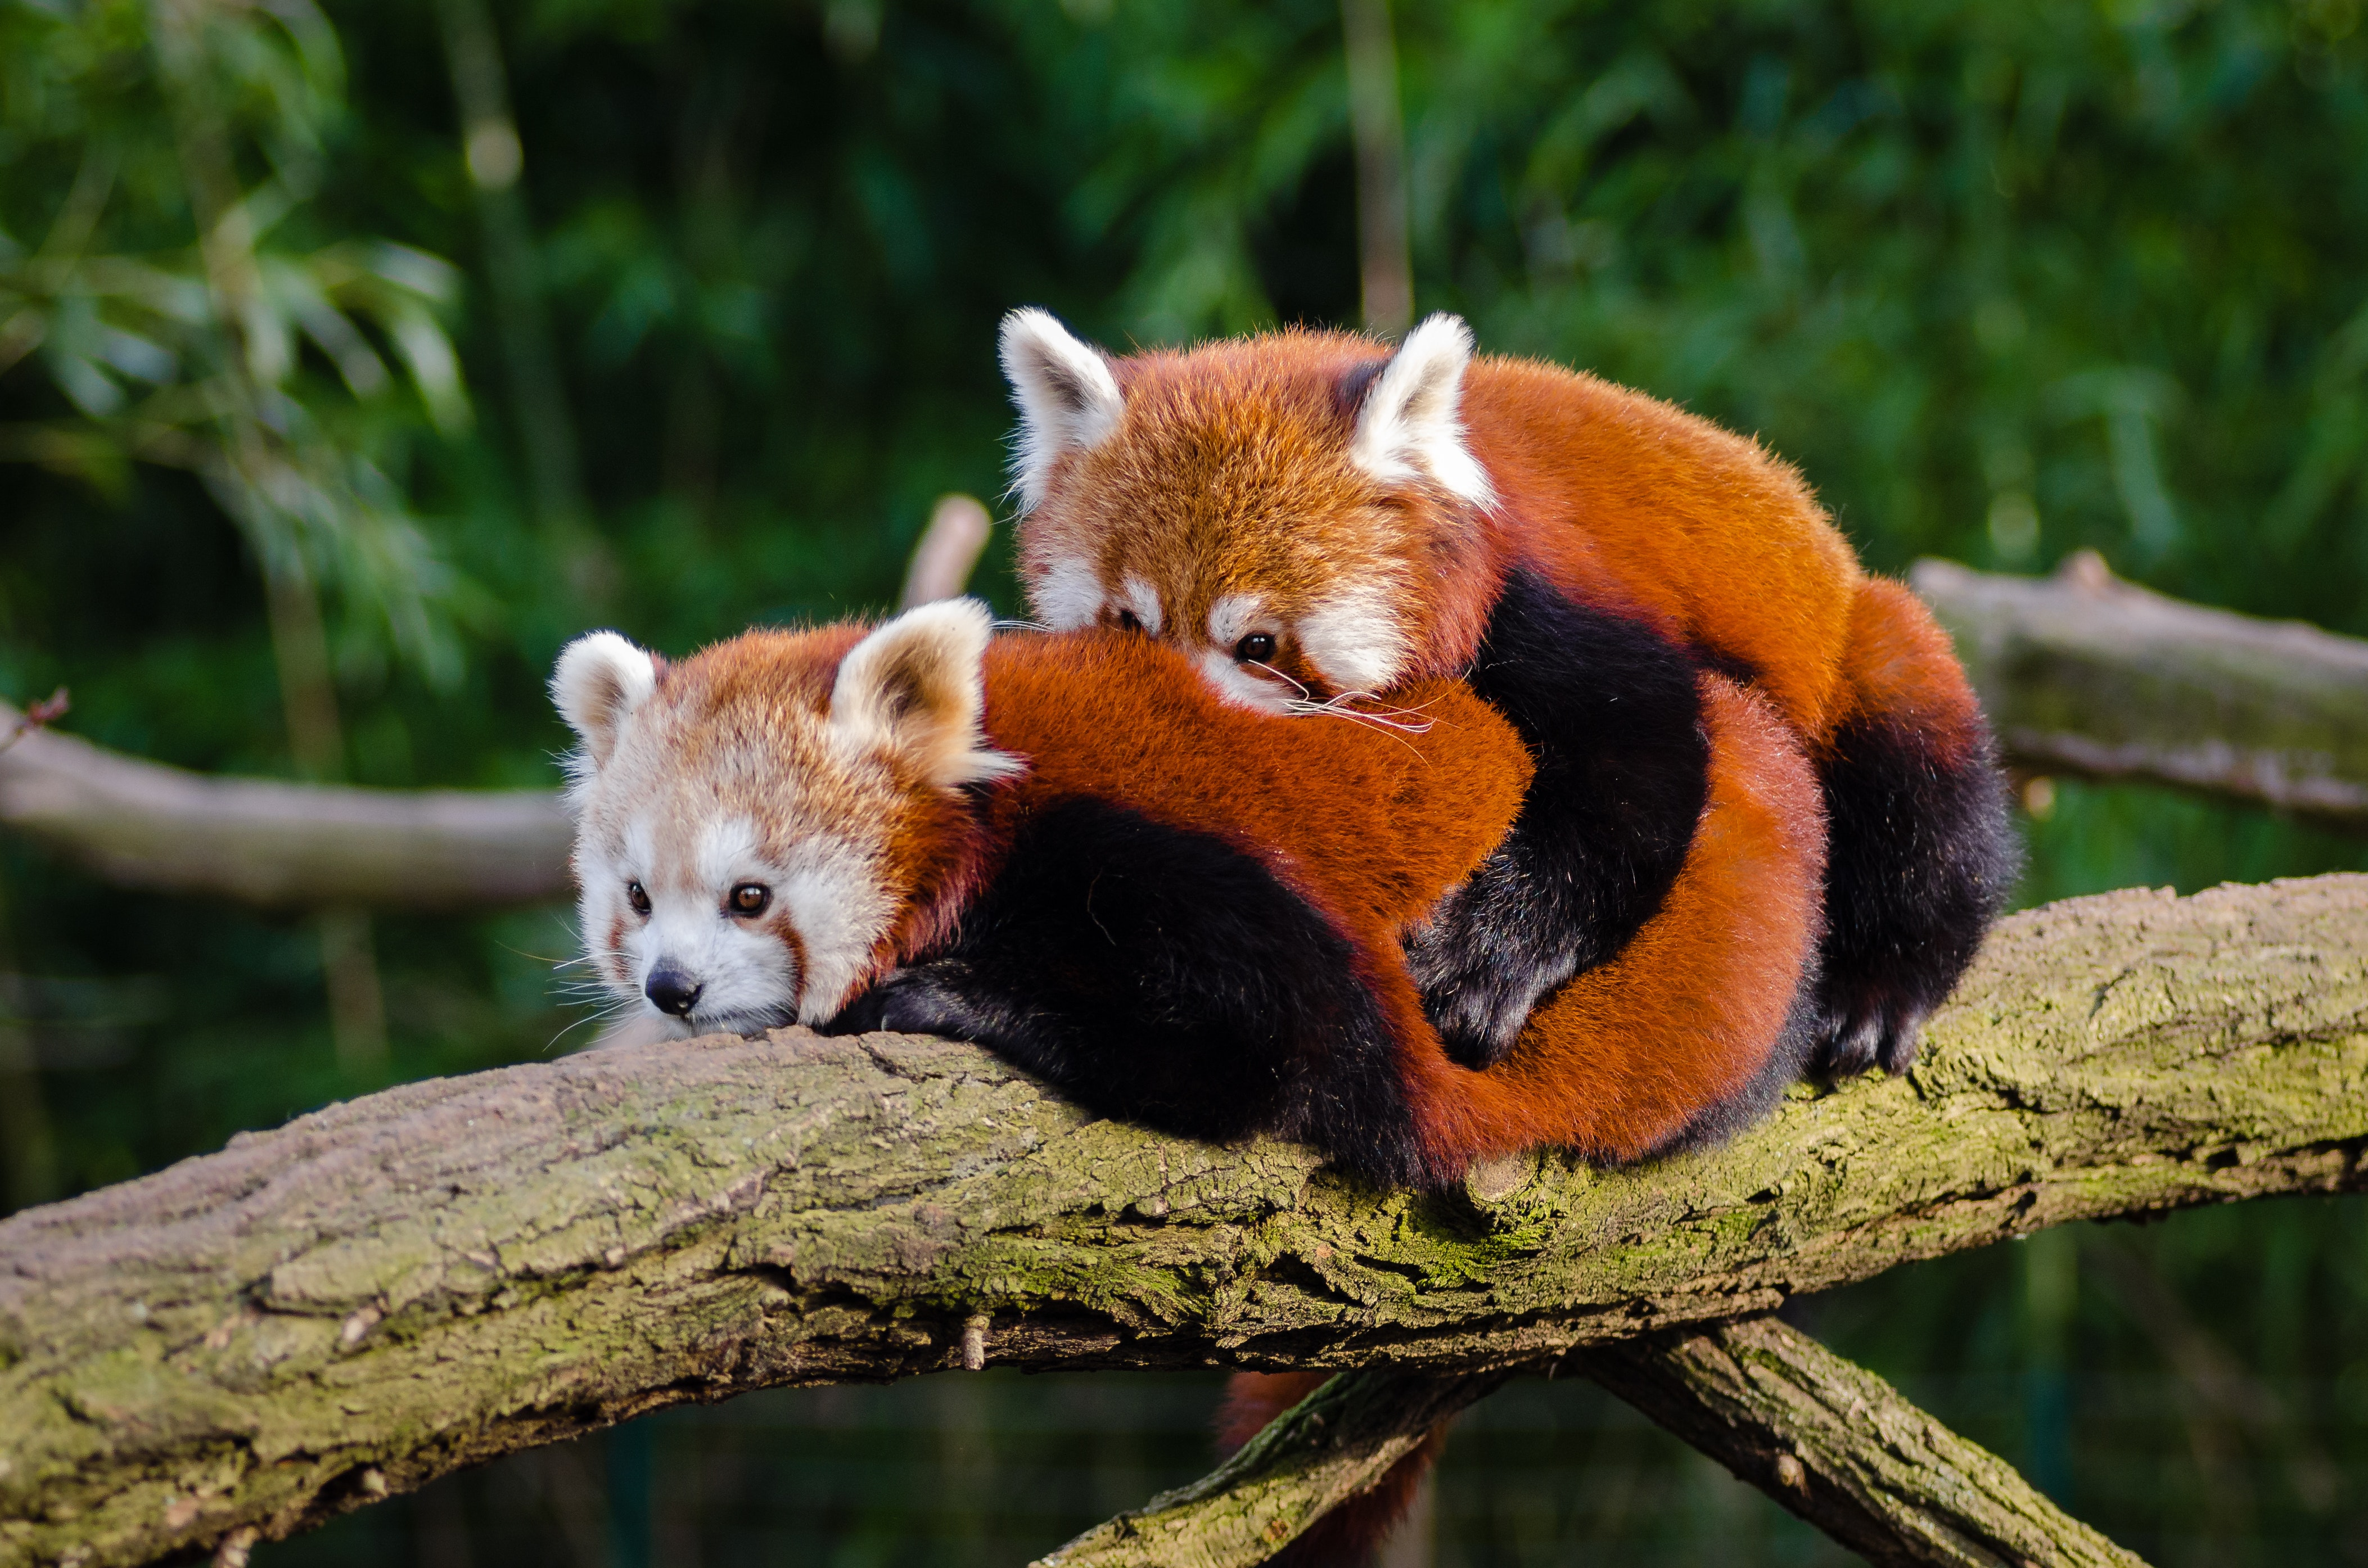 Red Pandas, Red panda, Outdoors, Tree, Tree branch, HQ Photo